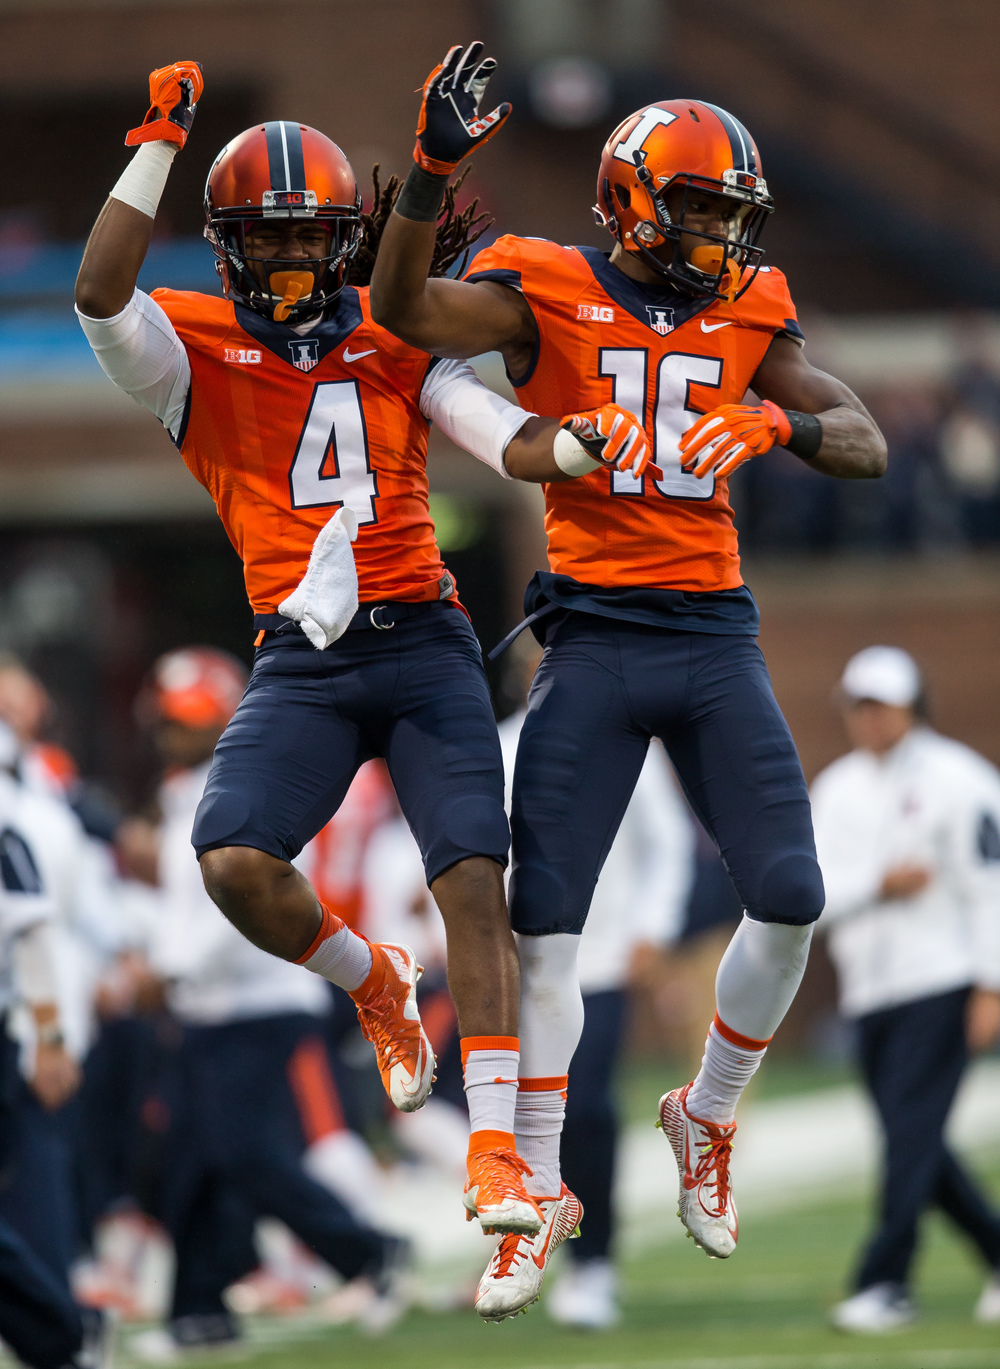 Illinois Fighting Illini wide receiver Marchie Murdock (16) celebrates his touchdown with wide receiver Dionte Taylor (4) in the fourth quarter against Nebraska at Memorial Stadium, Saturday, Oct. 3, 2015, in Champaign, Ill. Justin L. Fowler/The State Journal-Register